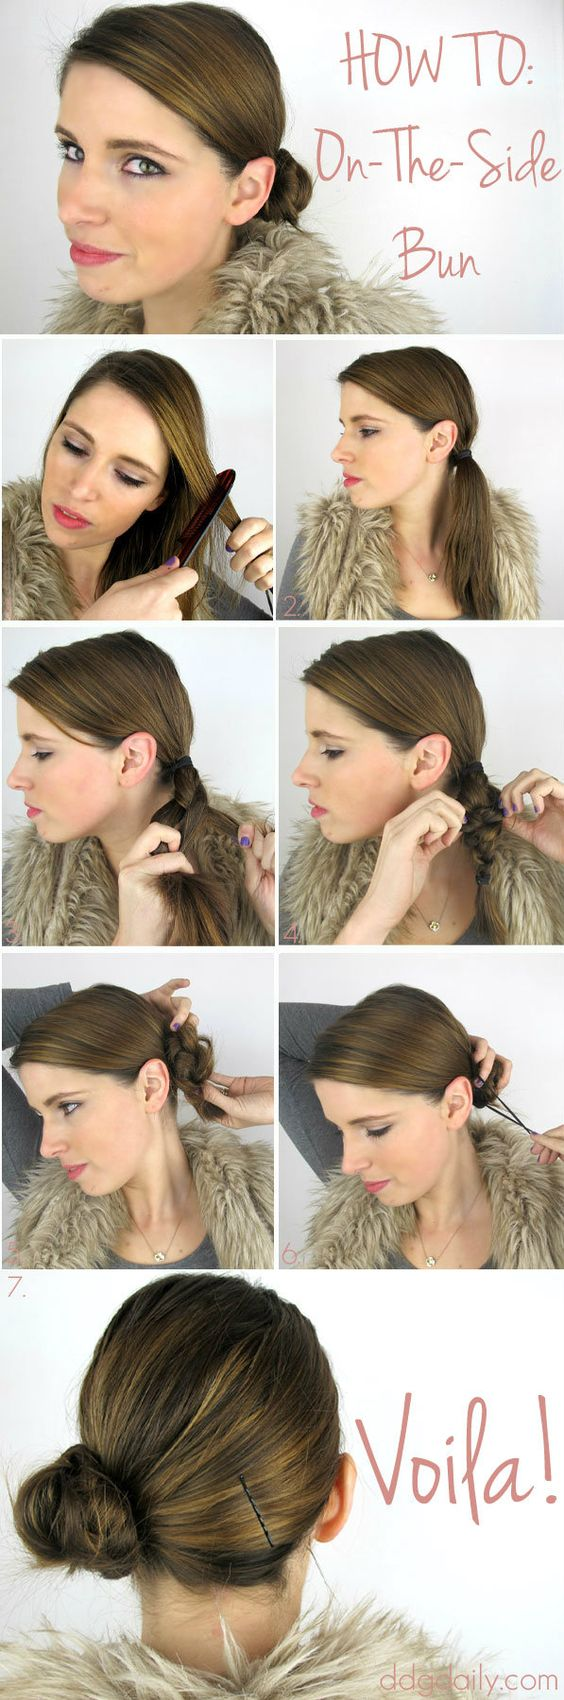 low side bun tutorial